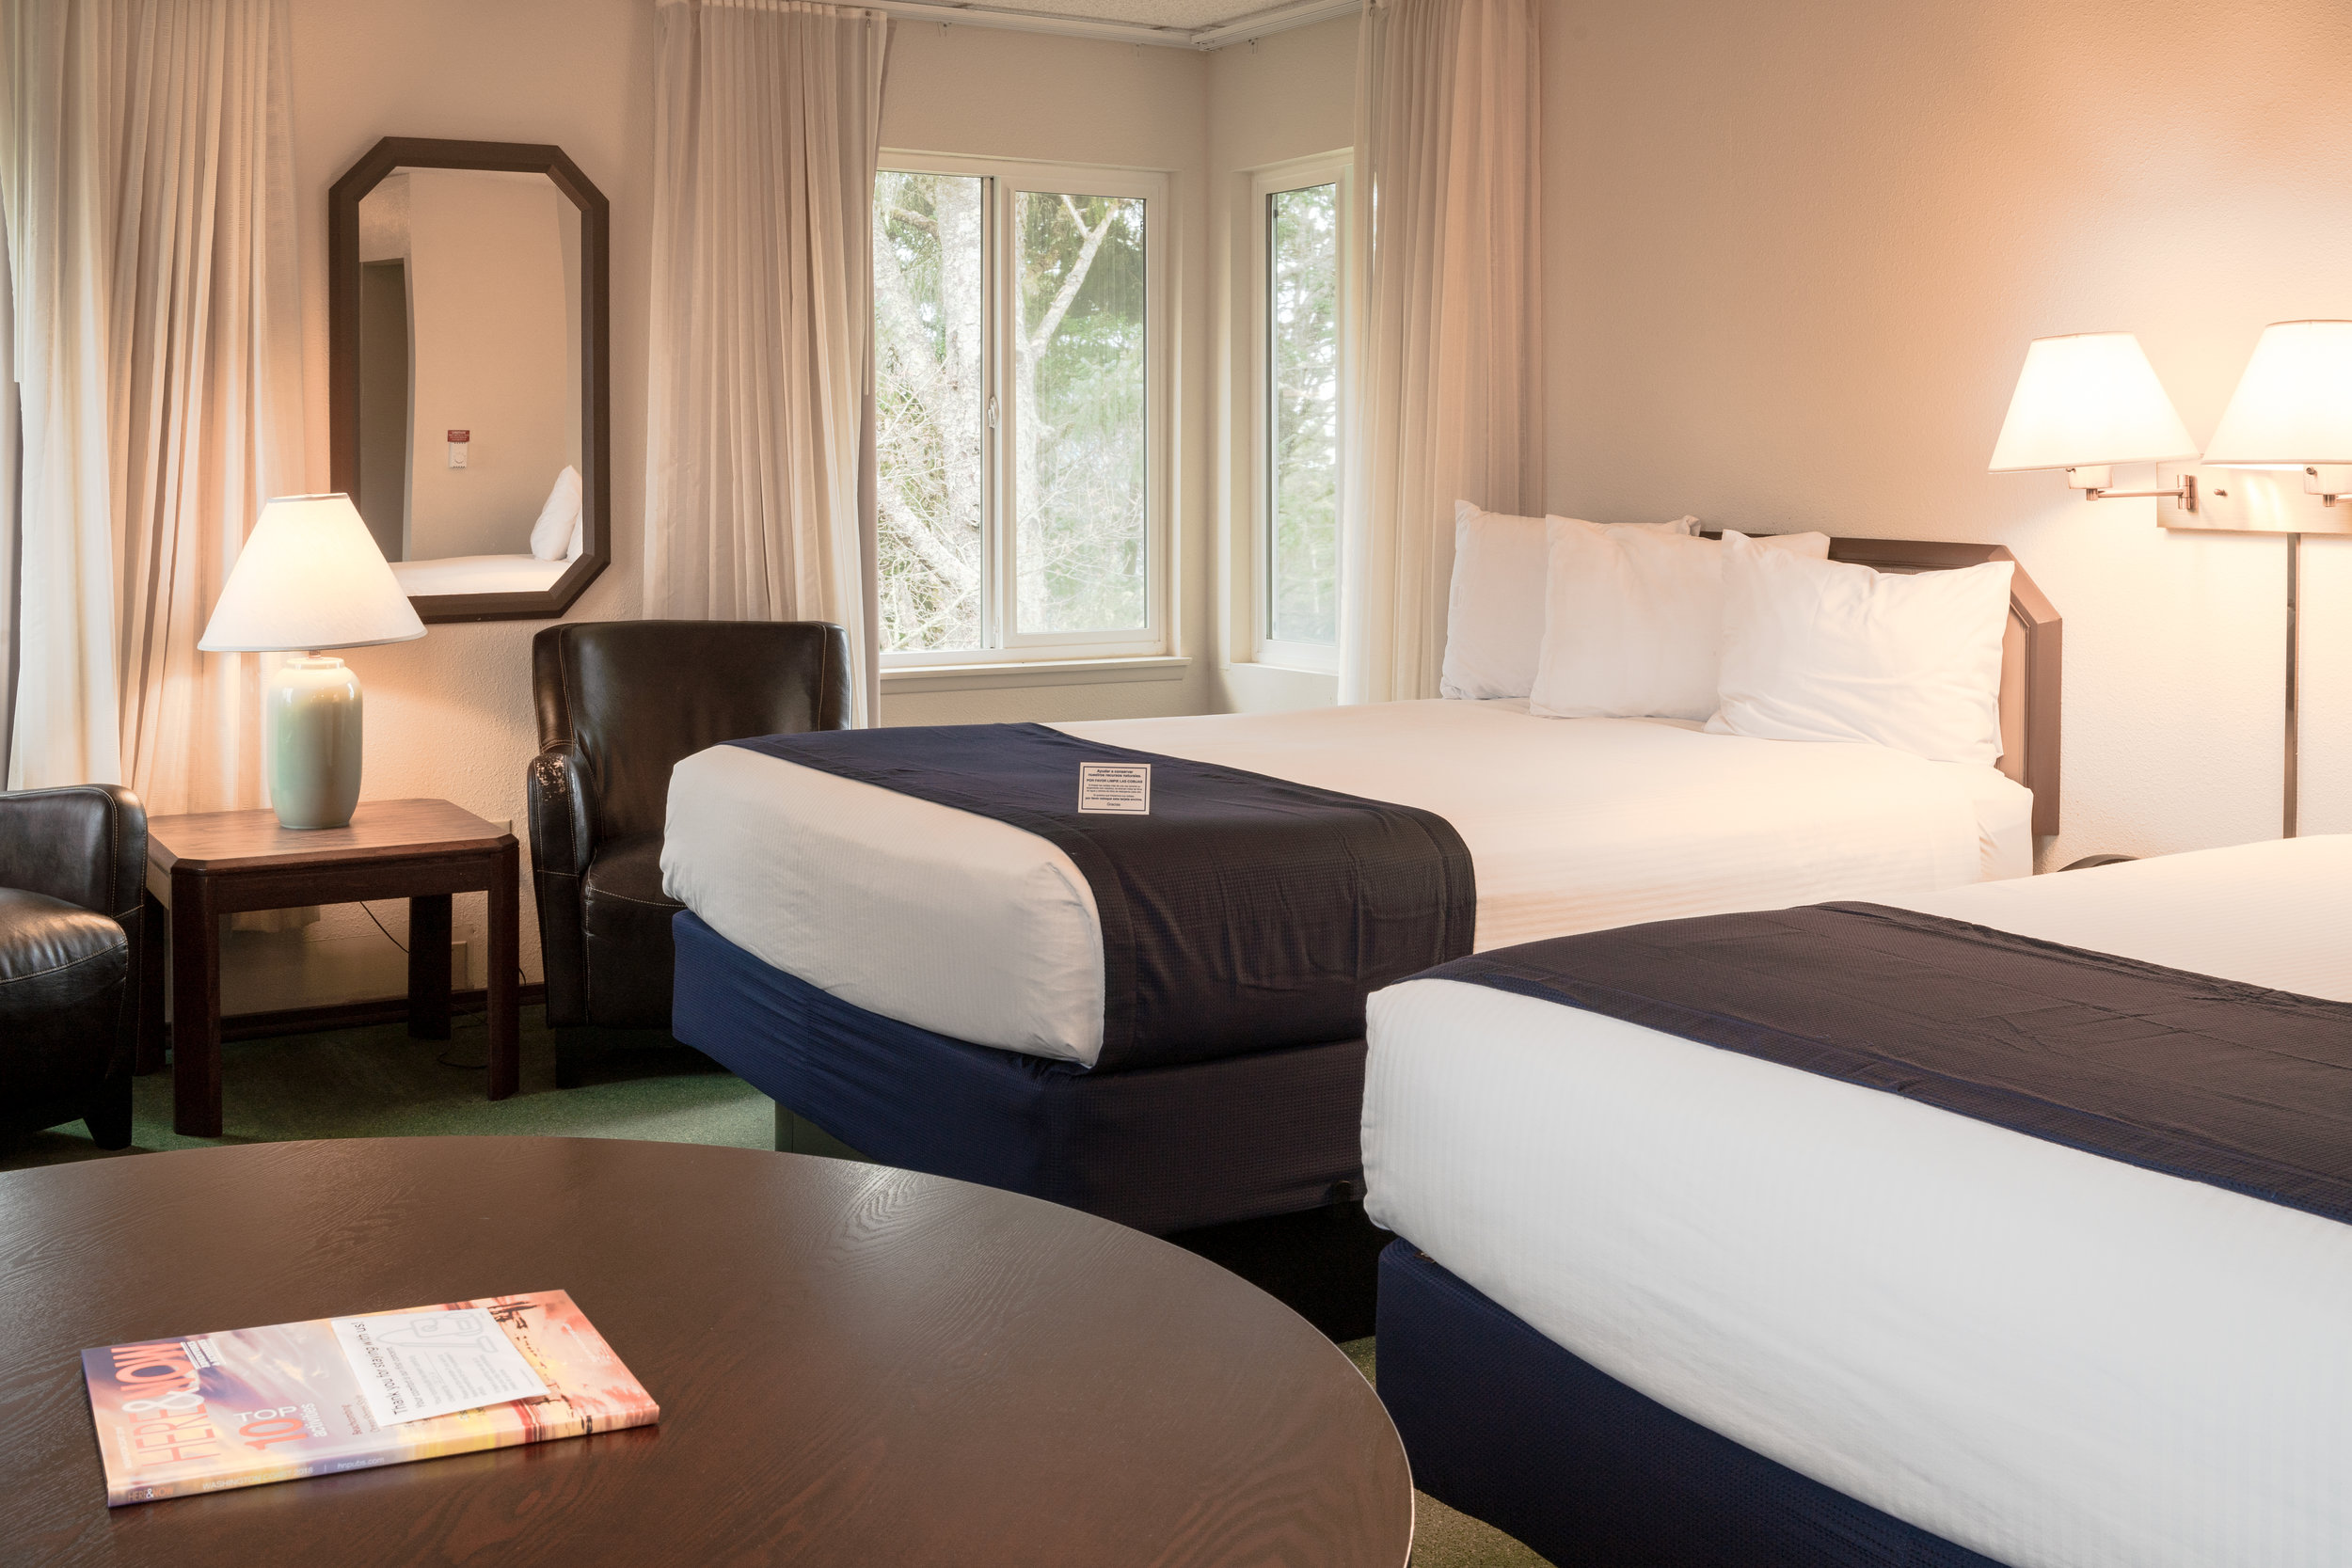 Standard Rooms - This standard room features a king pillow top bed. All rooms include a microwave, mini fridge, and a Keurig coffee maker.